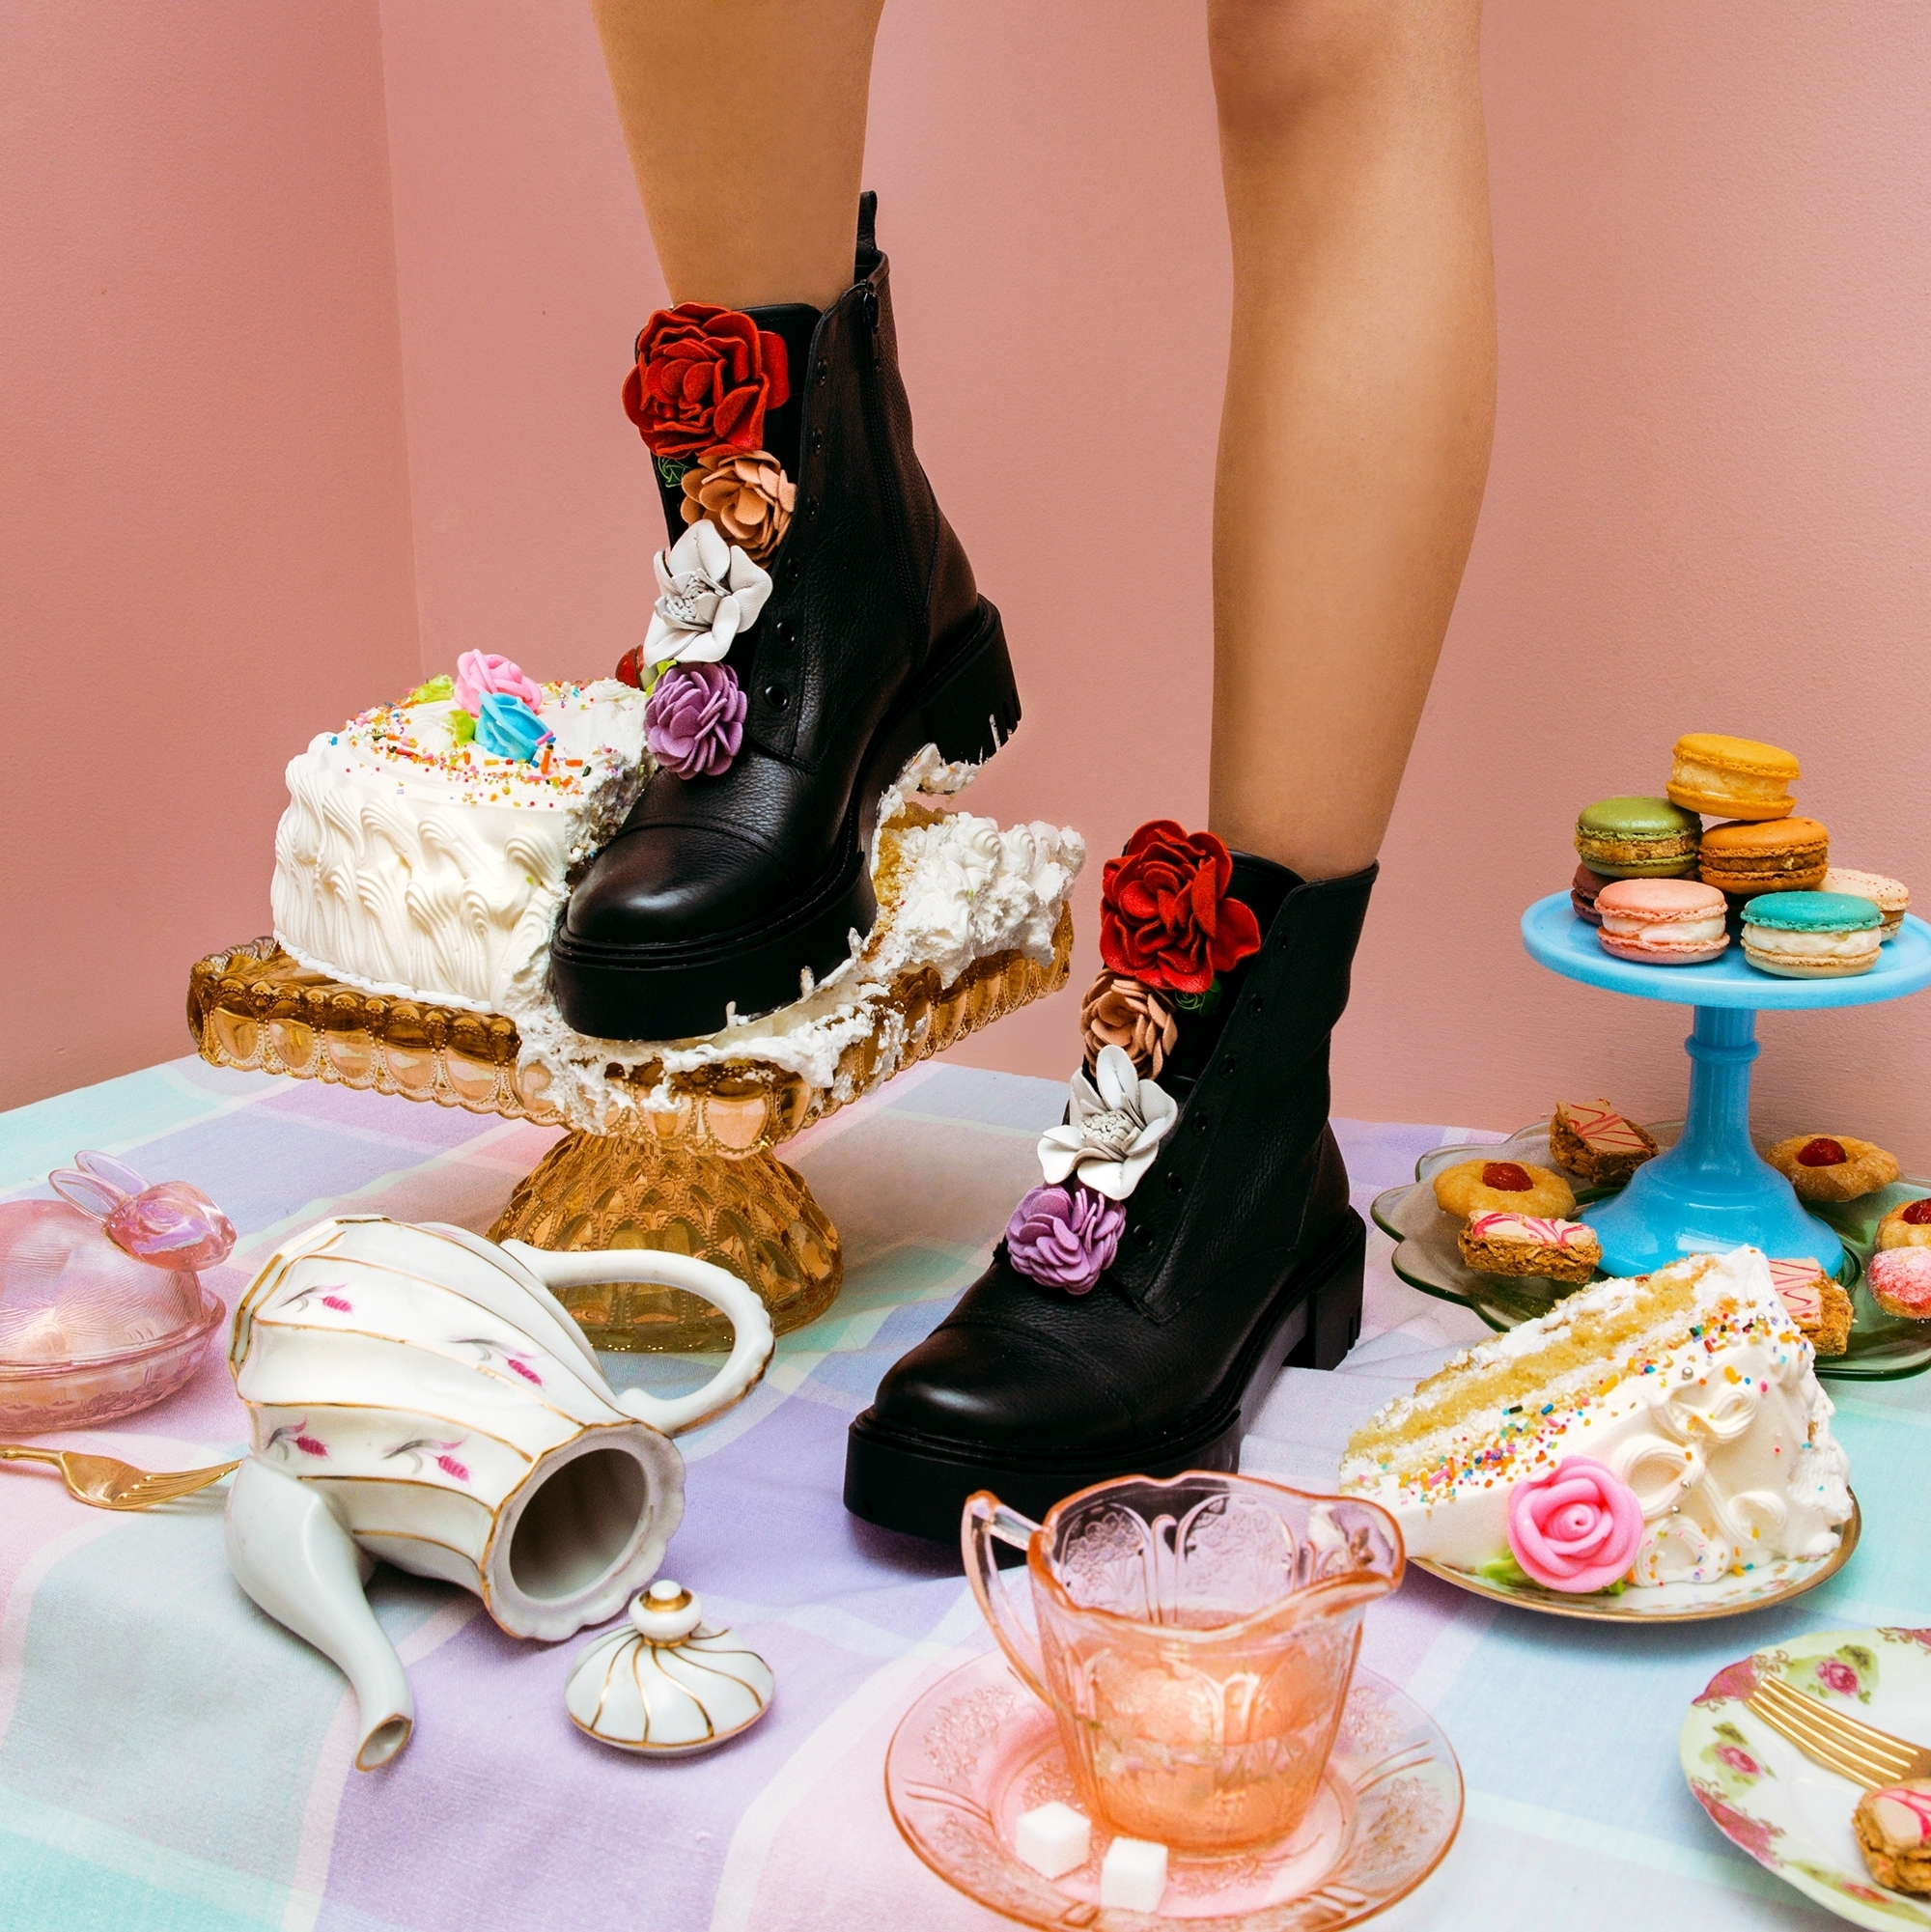 Published on Refinery29 for Katy Perry Footwear